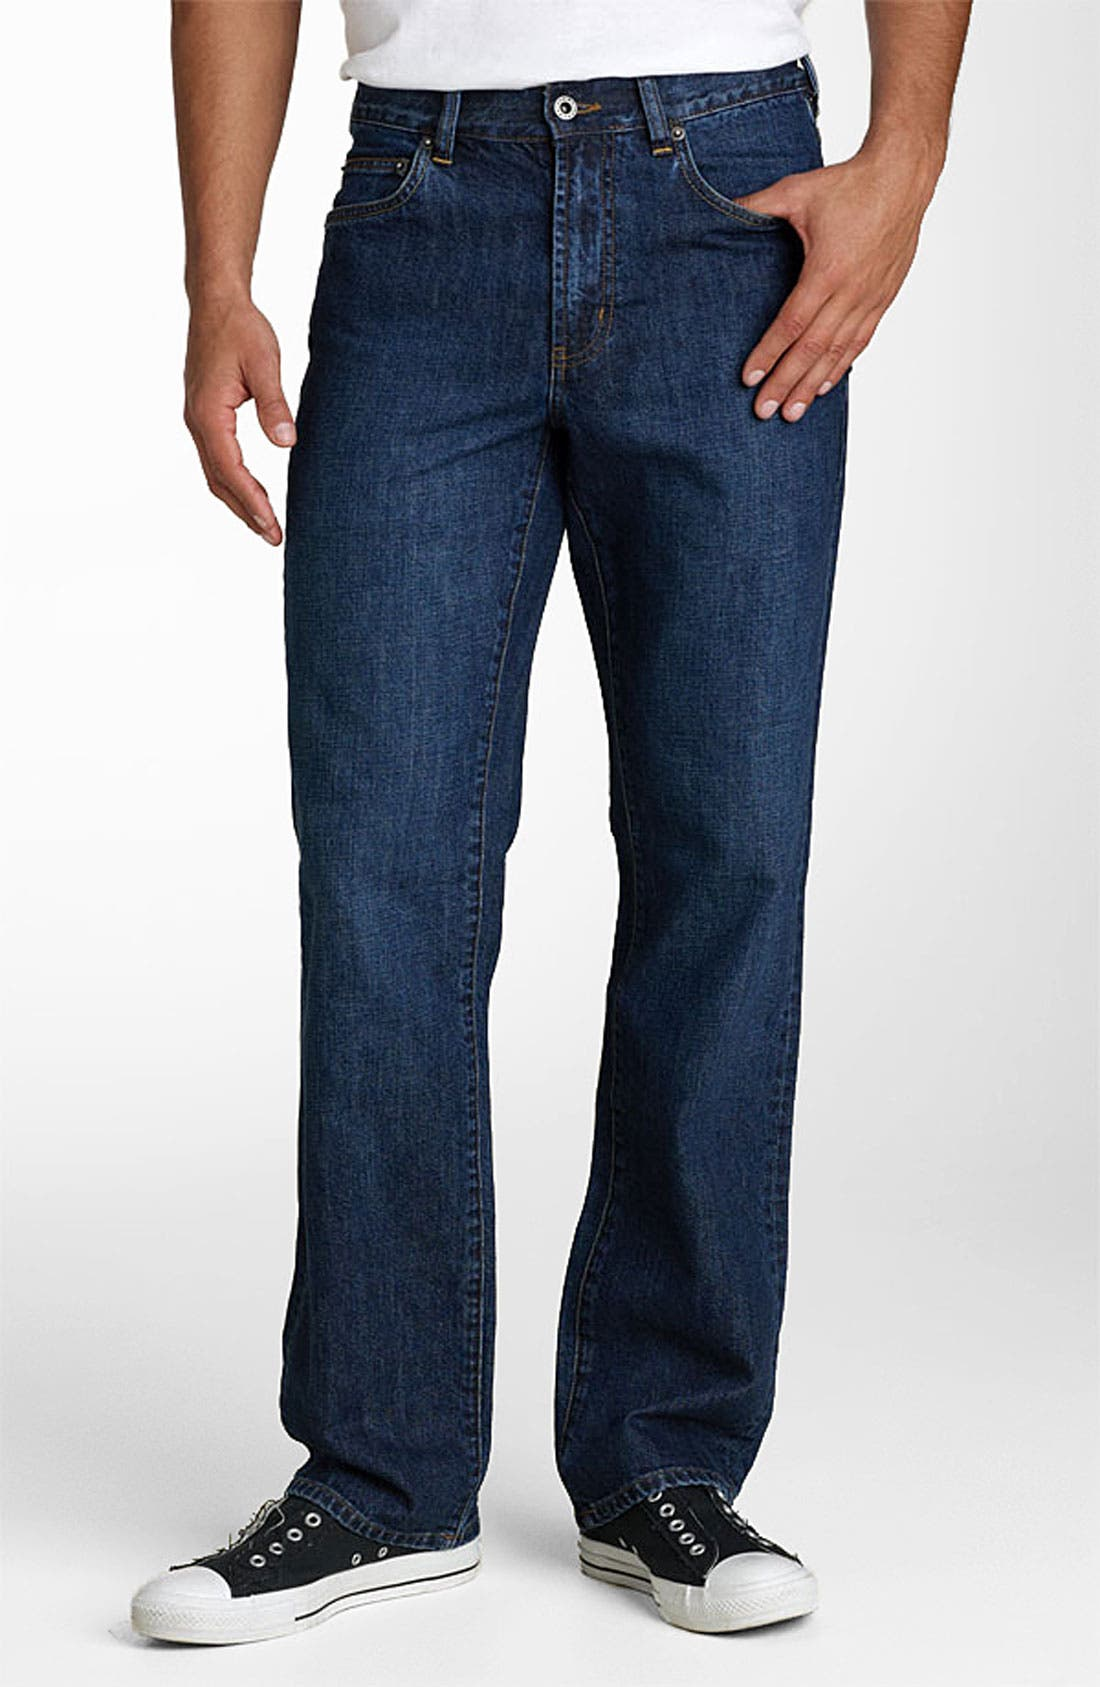 Alternate Image 1 Selected - Tommy Bahama Denim 'Stevens Park' Classic Fit Jeans (Dark)